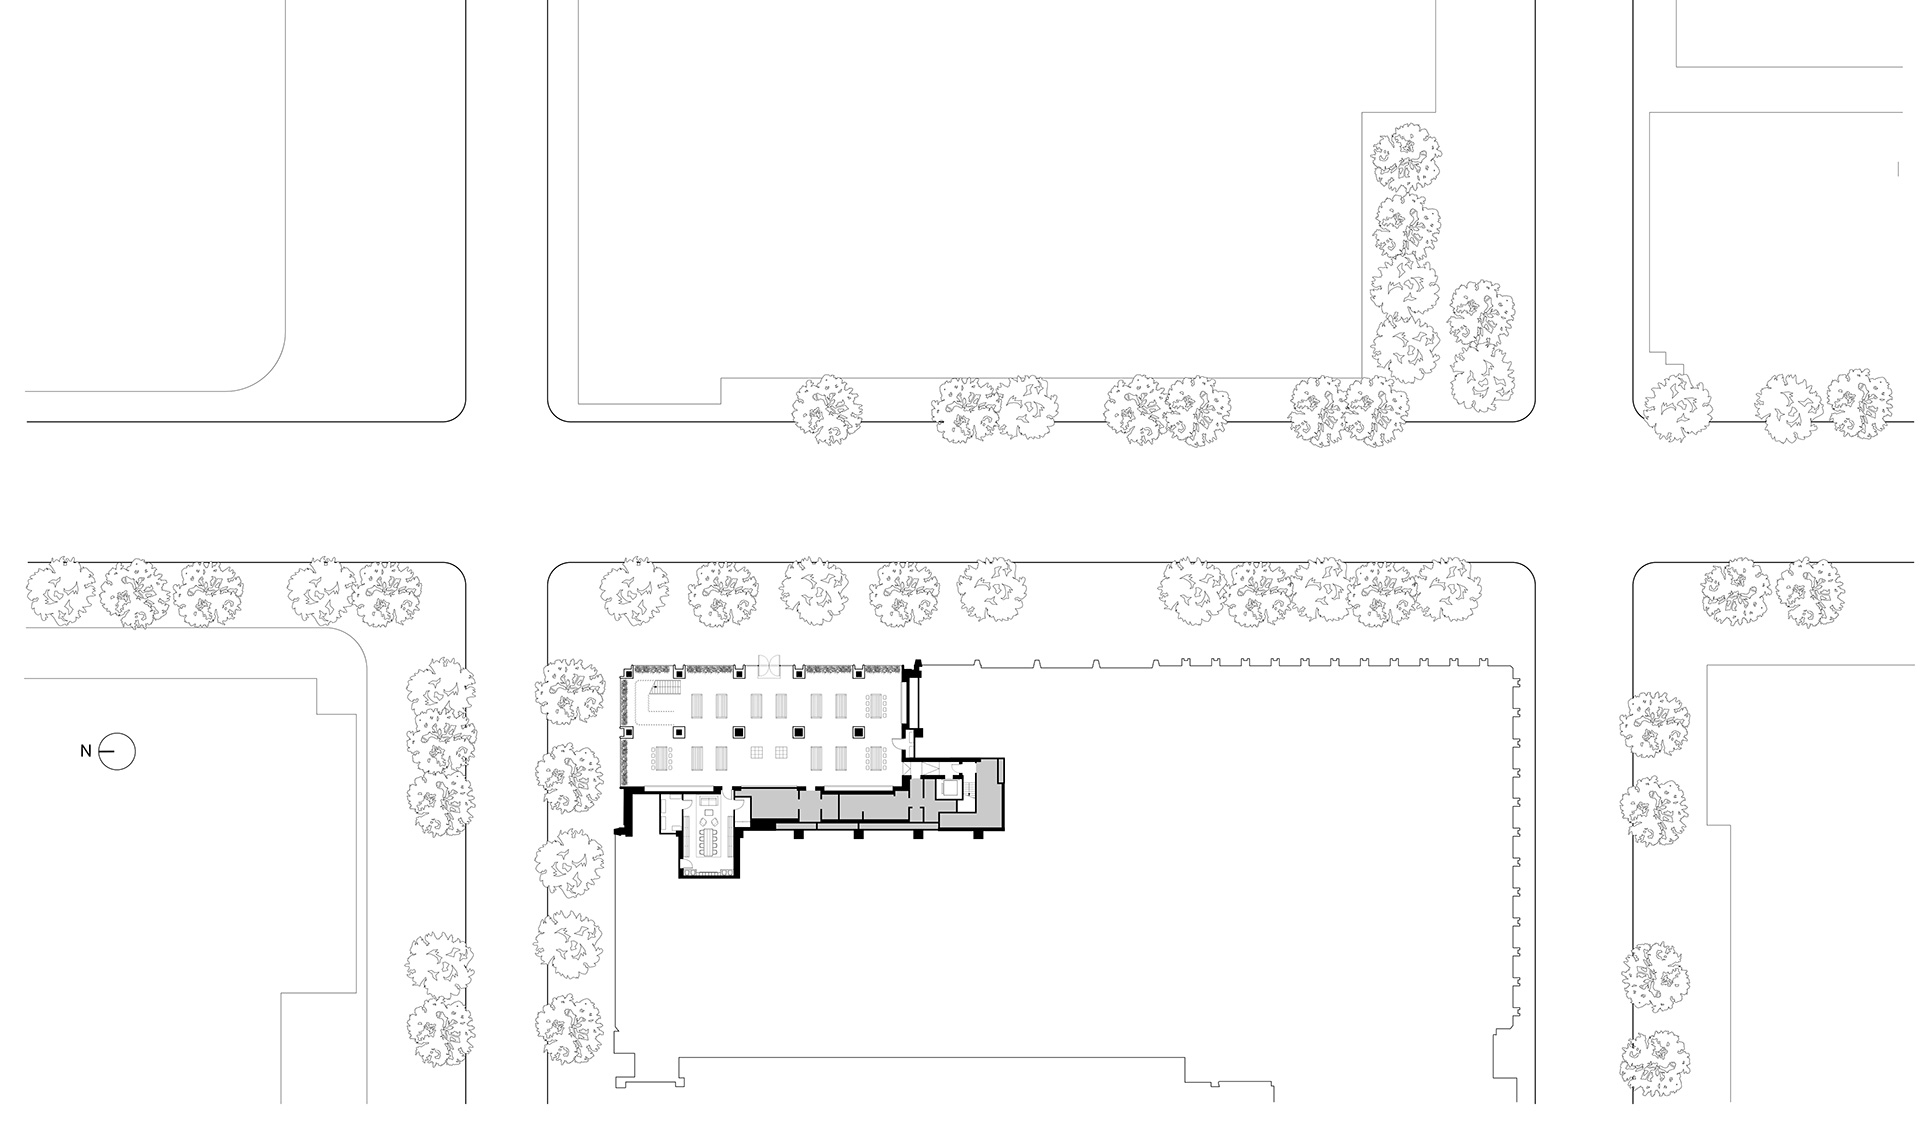 Site Plan | Apple Marunouchi | Foster + Partners | STIR